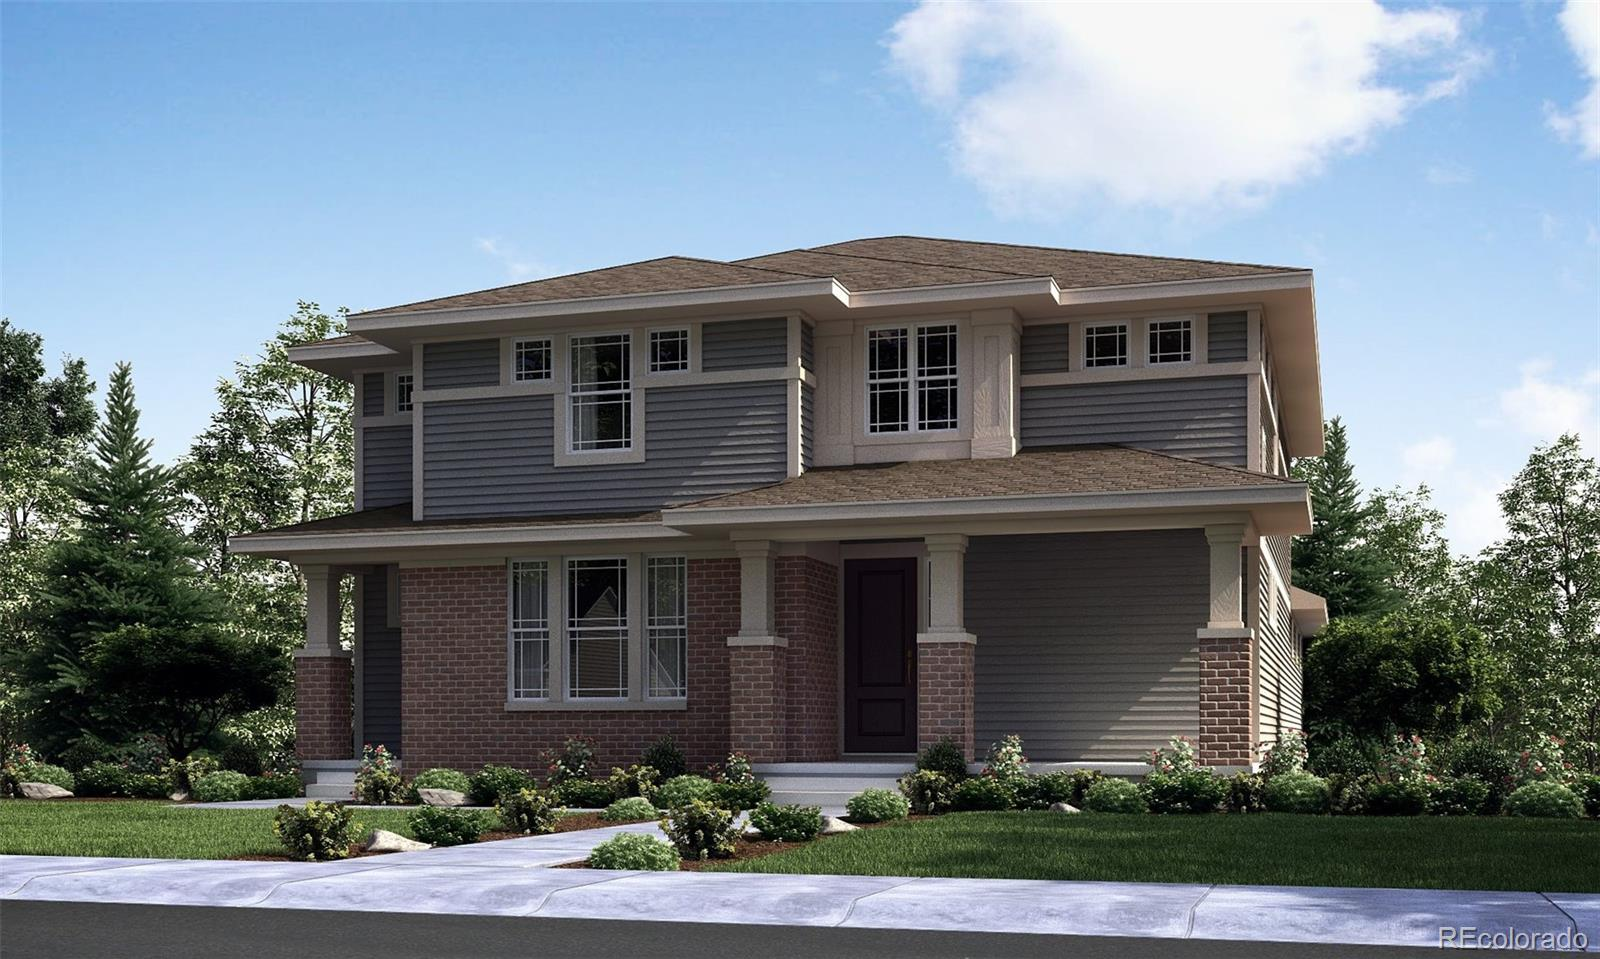 Available January 2022! Located on a southern facing lot, this gorgeous Revelation 2-story in Central Park features 4 beds (3 upper / 1 main NexGen), 3.5 baths (2 upper / 1 main / 1 NexGen bath), great room (main), kitchen (main), kitchenette (NexGen), formal dining room (main), living room (NexGen), unfinished basement and 3 car garage. Beautiful upgrades and finishes throughout. Central Park is a great Lennar community providing the best of Colorado living with all the latest technology. Lennar provides the latest in energy efficiency & state of the art technology with several fabulous floorplans to choose from. Energy efficiency, and technology/connectivity seamlessly blended with luxury to make your new house a home. What some builders consider high-end upgrades, Lennar makes a standard inclusion. You will not be disappointed. This community offers homes for every lifestyle. Close to dining, shopping, entertainment and other amenities. Easy commute to DIA, E-470, Downtown Denver & beyond. Numerous parks and miles of trails to explore - plenty to see and do. Still time to make design selections.